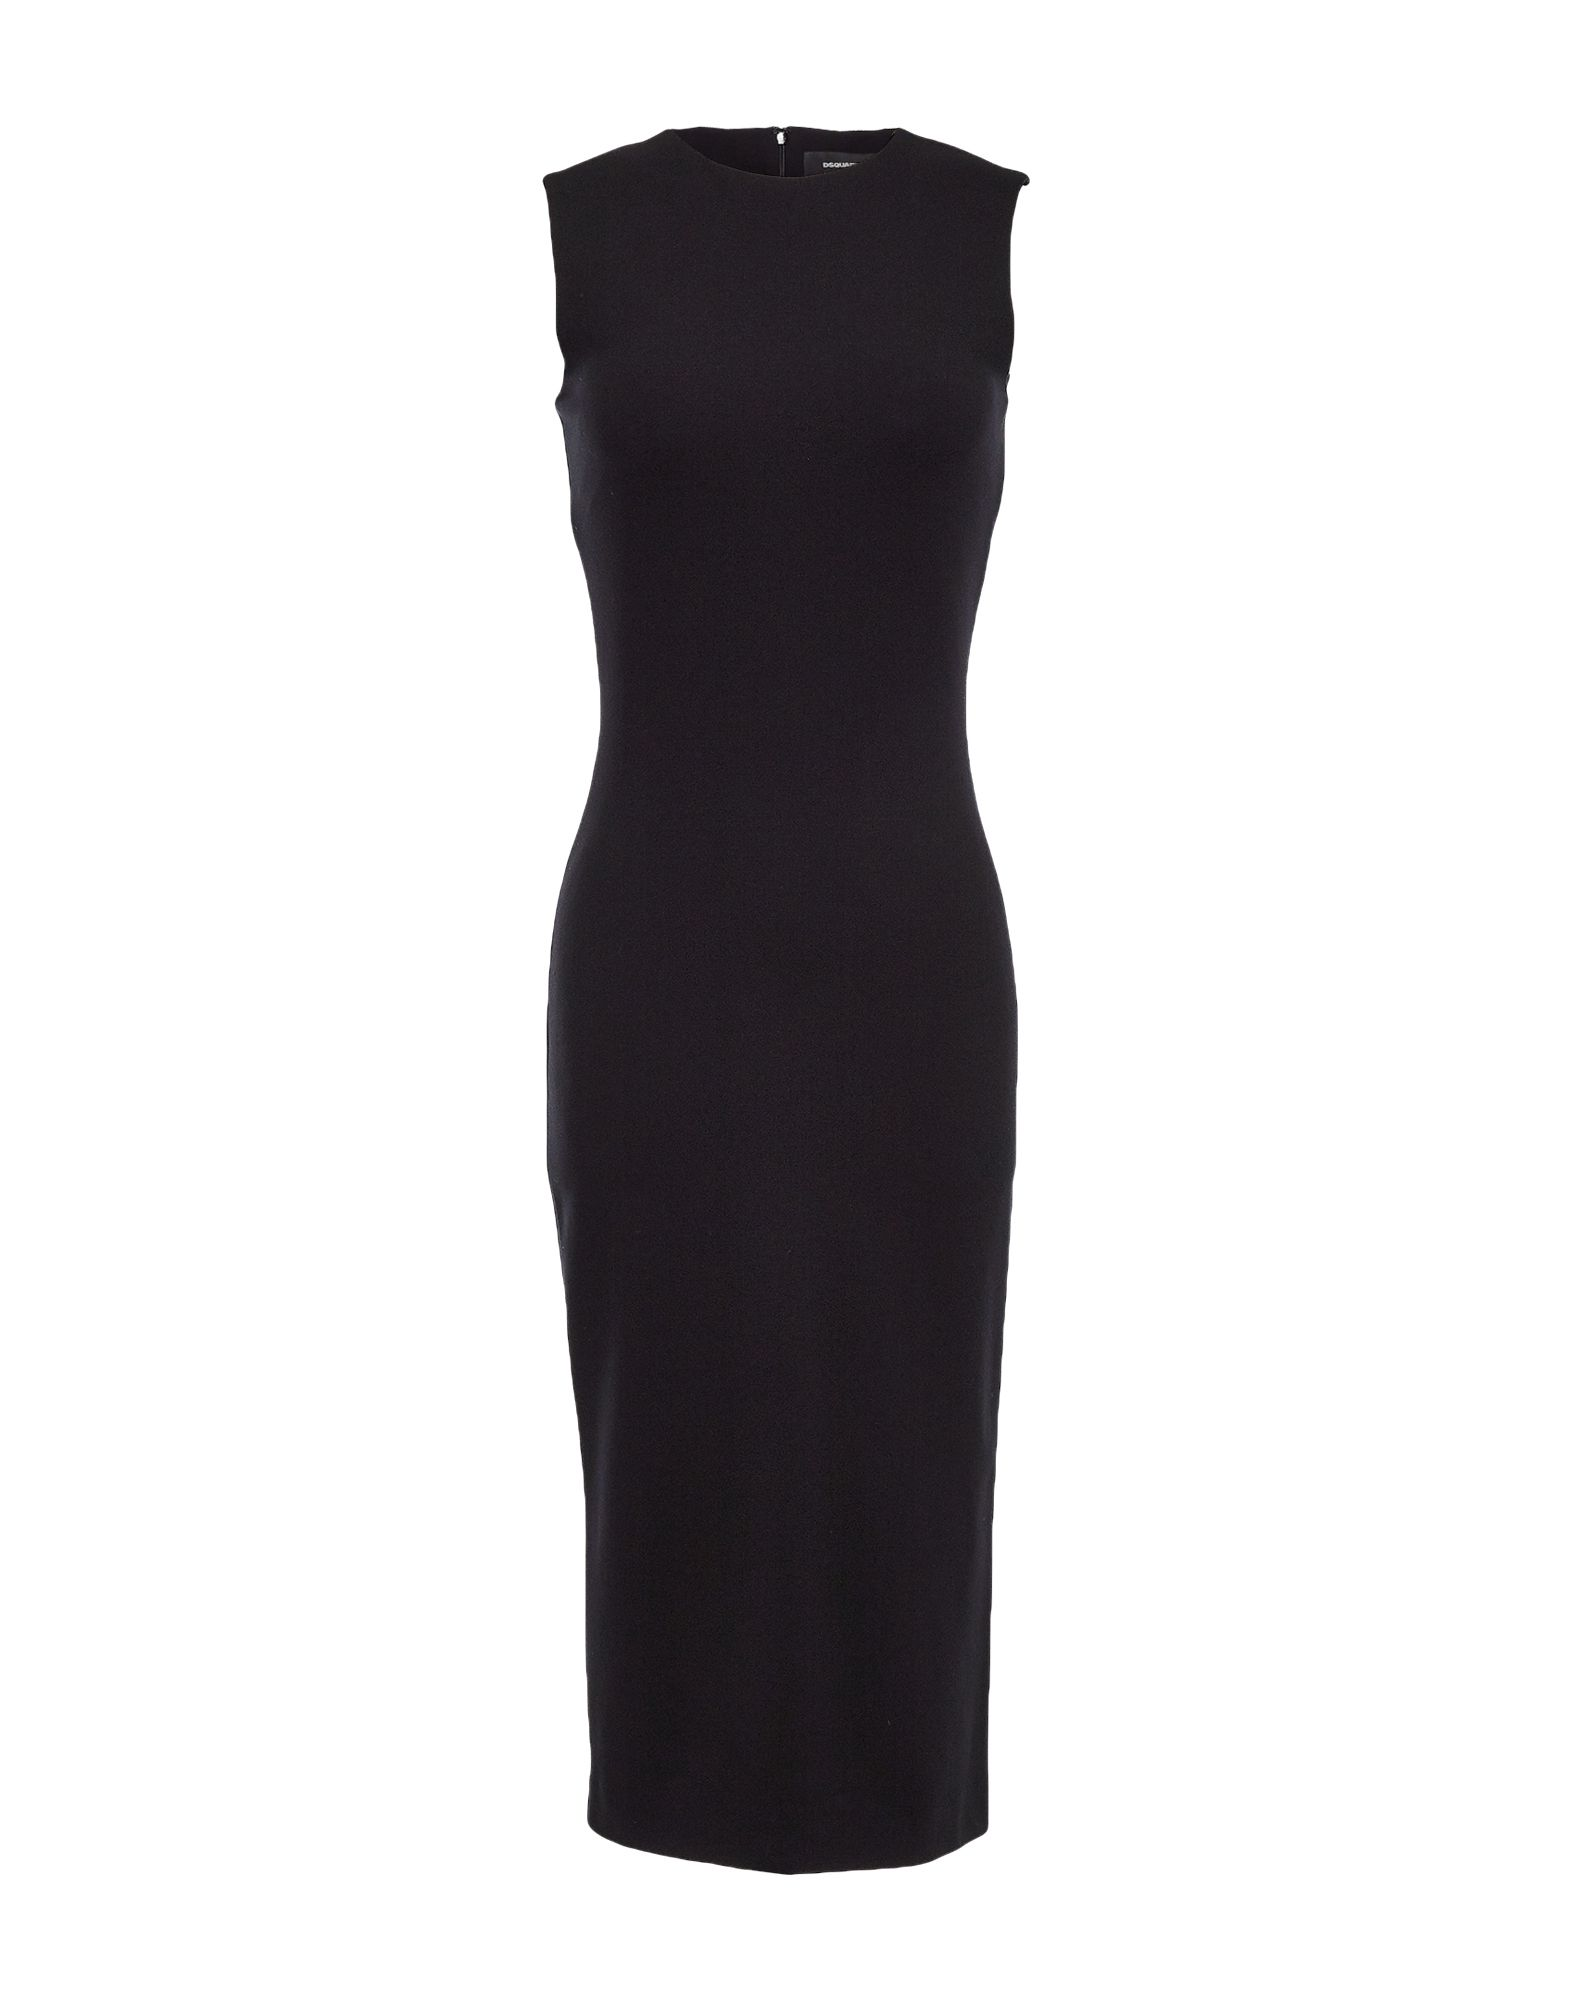 DSQUARED2 Knee-length dresses. synthetic jersey, solid color, round collar, no pockets, hook-and-bar, zip, sleeveless, unlined, rear closure, no appliqués, stretch, small sized. 67% Viscose, 28% Polyamide, 5% Elastane